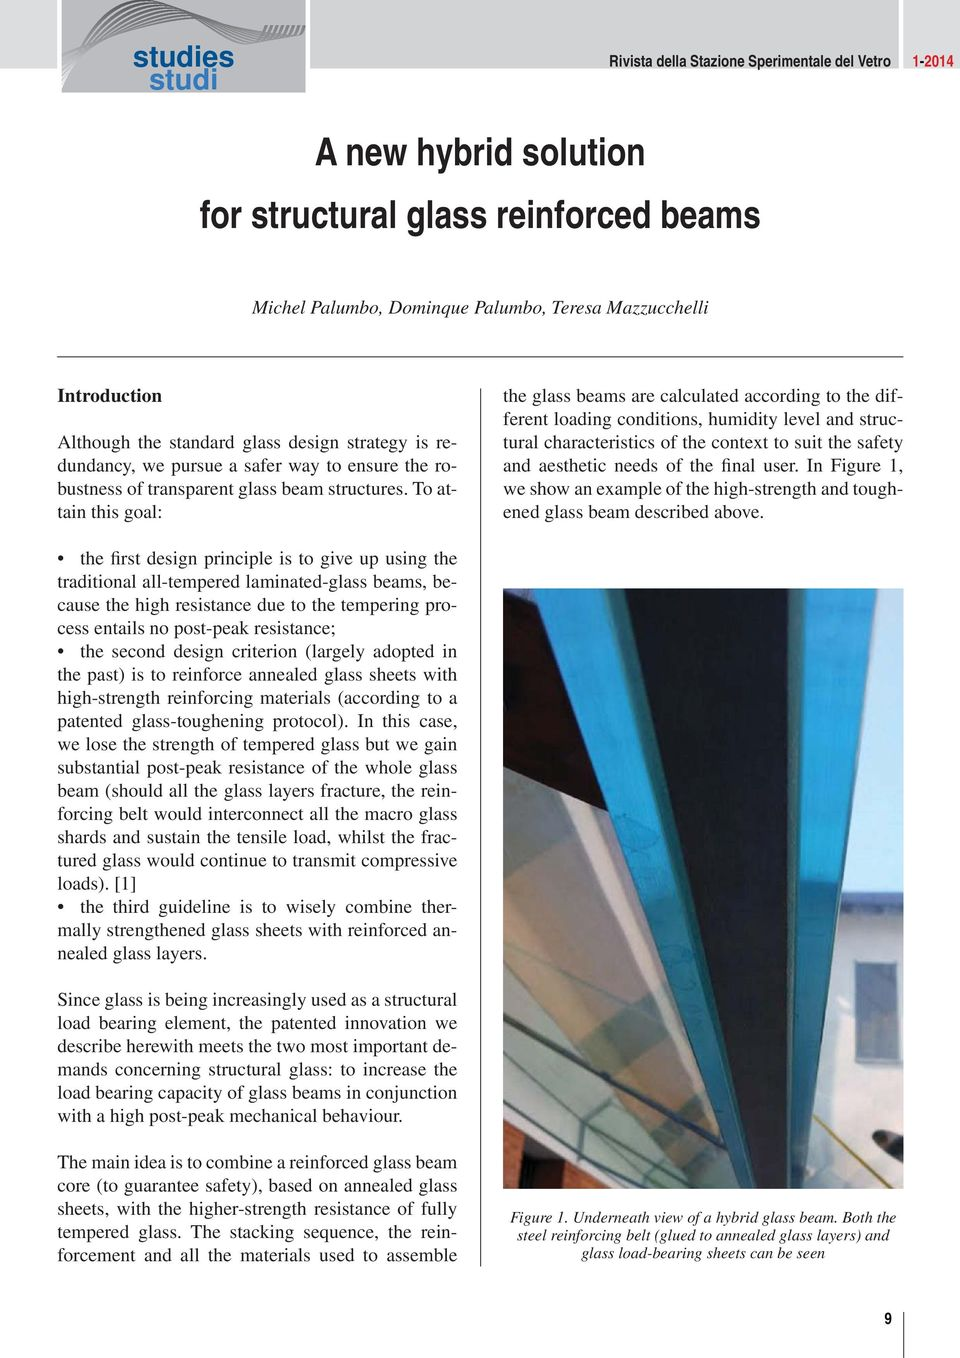 To attain this goal: the glass beams are calculated according to the different loading conditions, humidity level and structural characteristics of the context to suit the safety and aesthetic needs